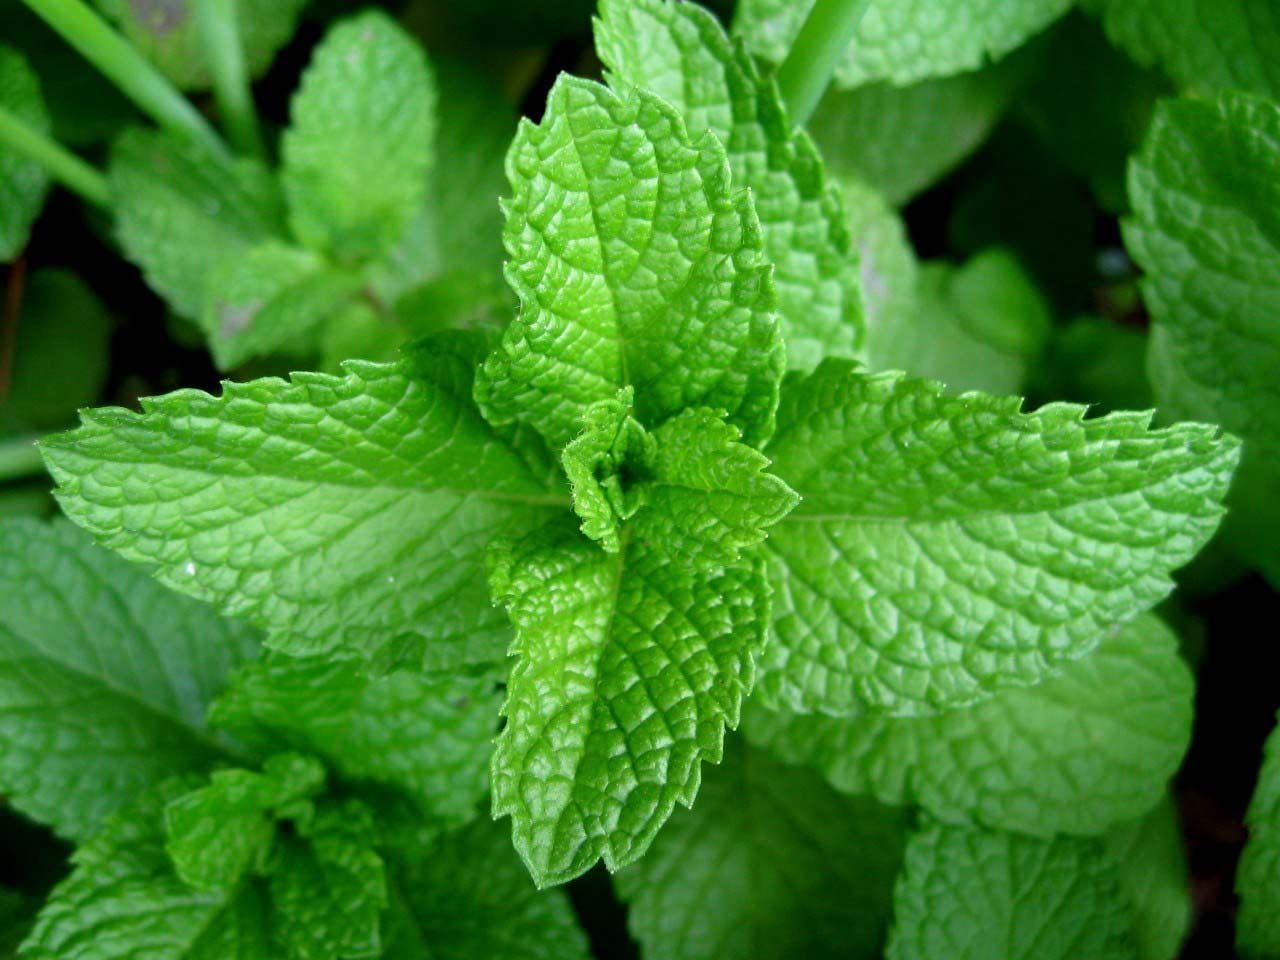 Peppermint, HERB Seeds Heirloom, Non GMO 100 Peppermint Seeds, Delicious